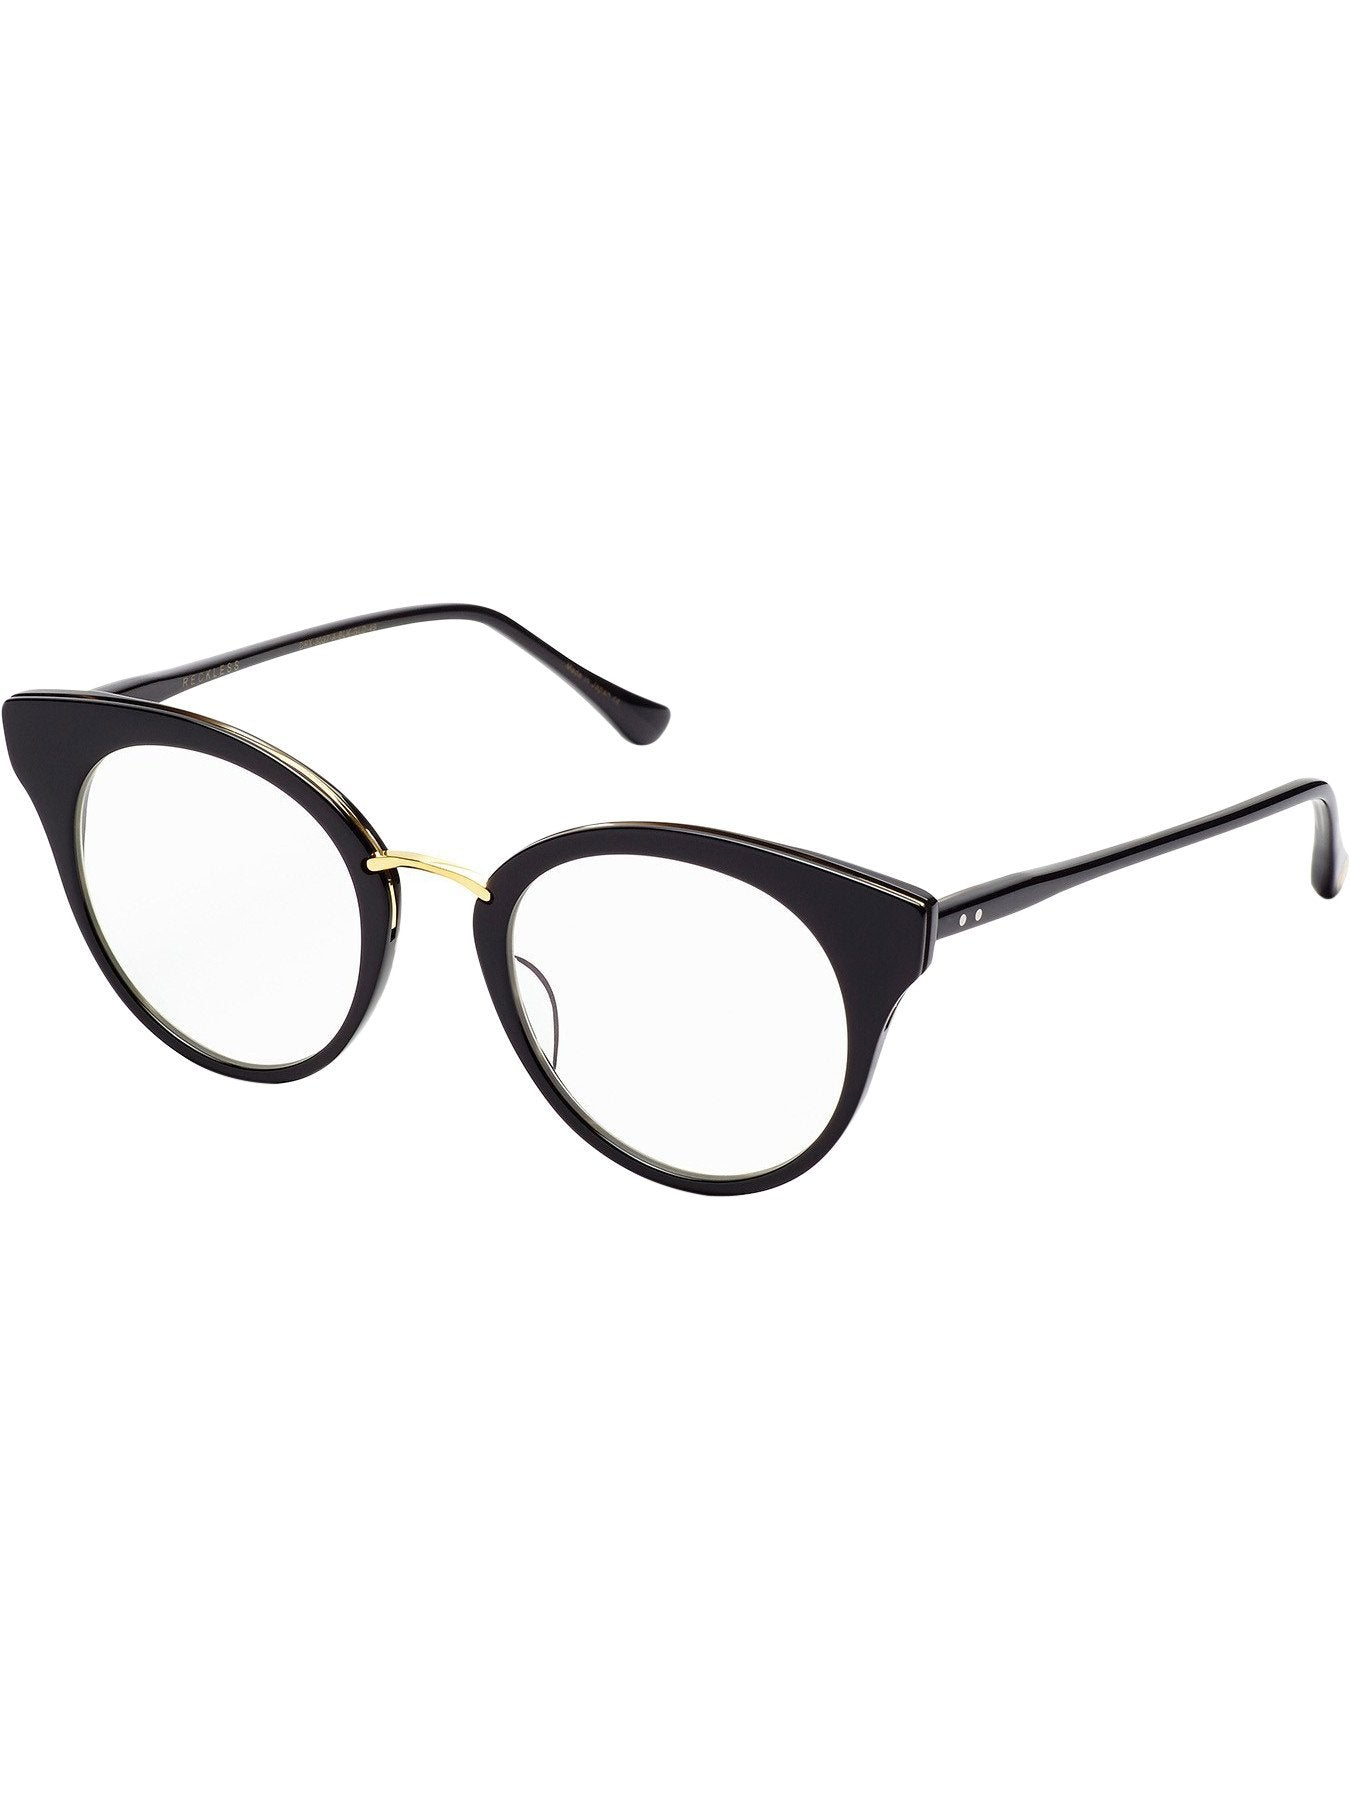 Optical Frame - Dita Reckless DRX-3037A Glasses